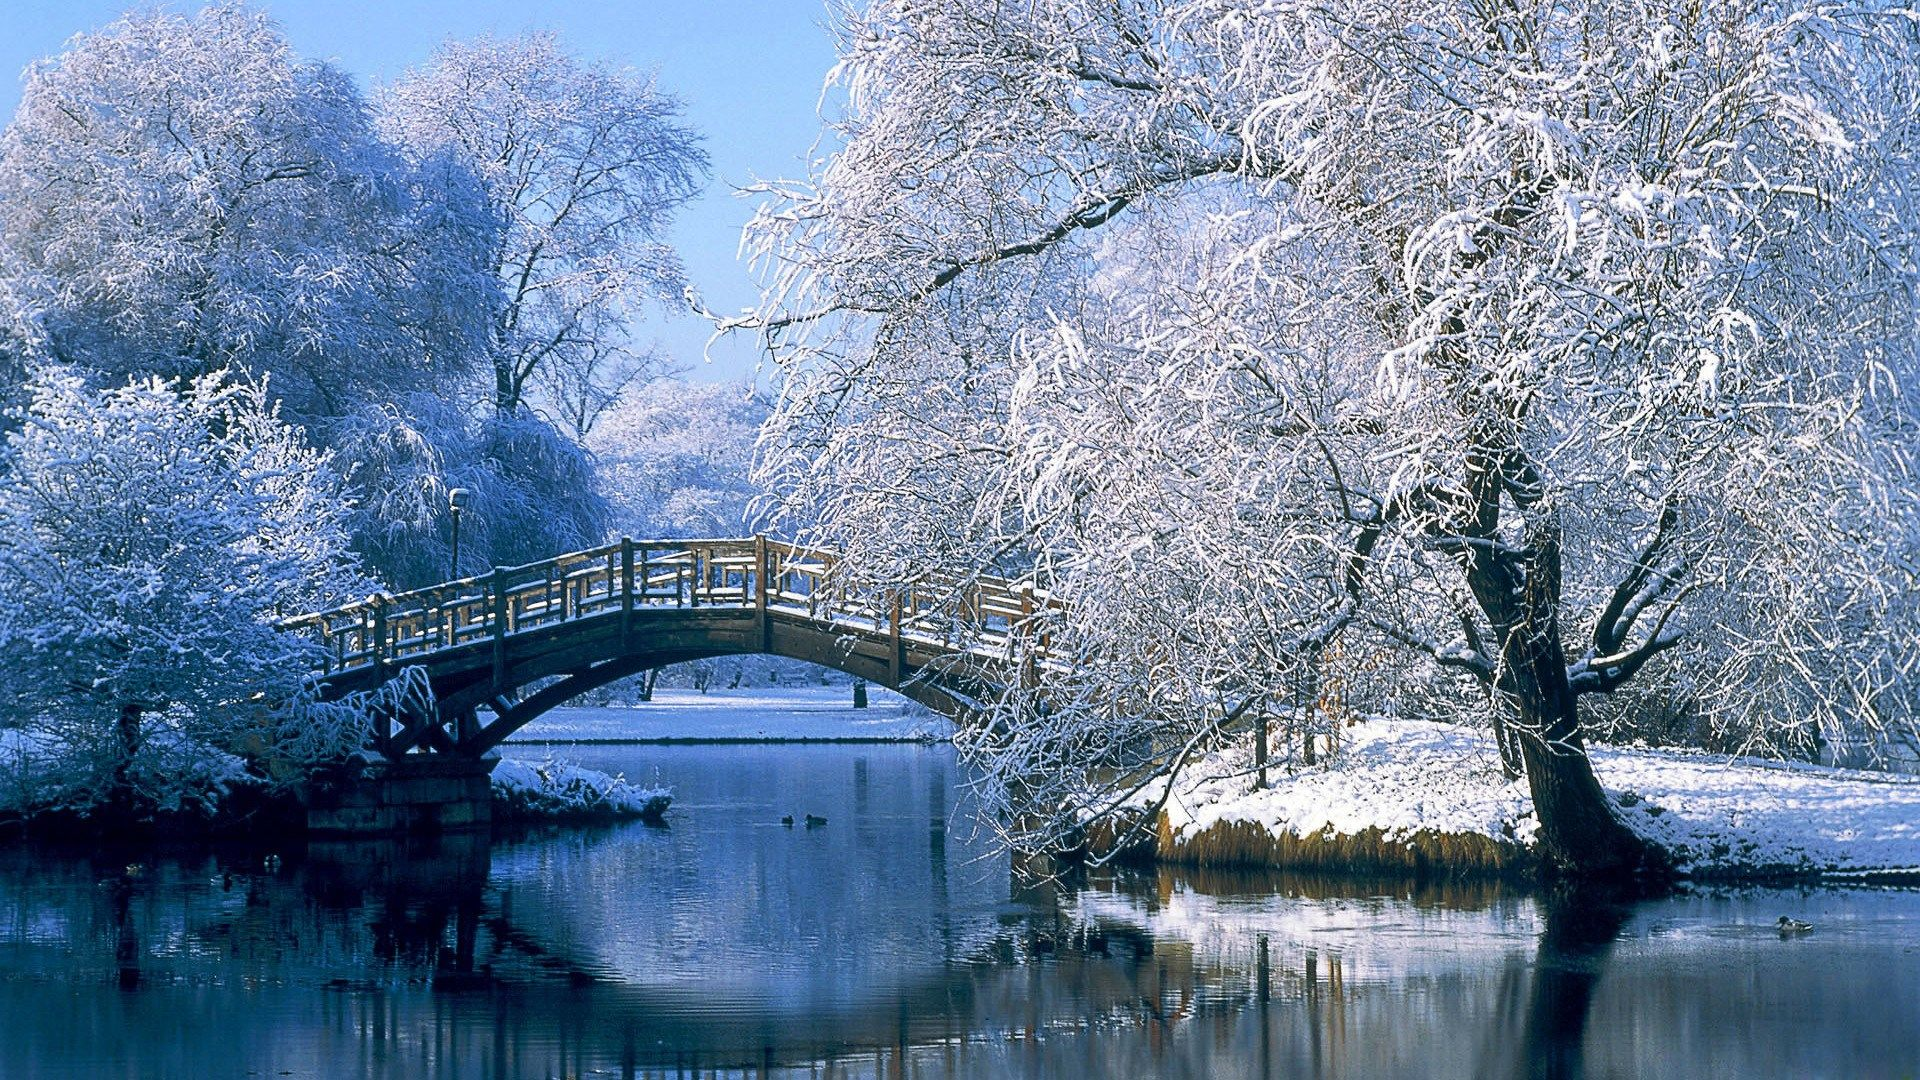 Desktop Backgrounds For Computer Full Hd 1080p Winter Scenery Winter Landscape Winter Wallpaper